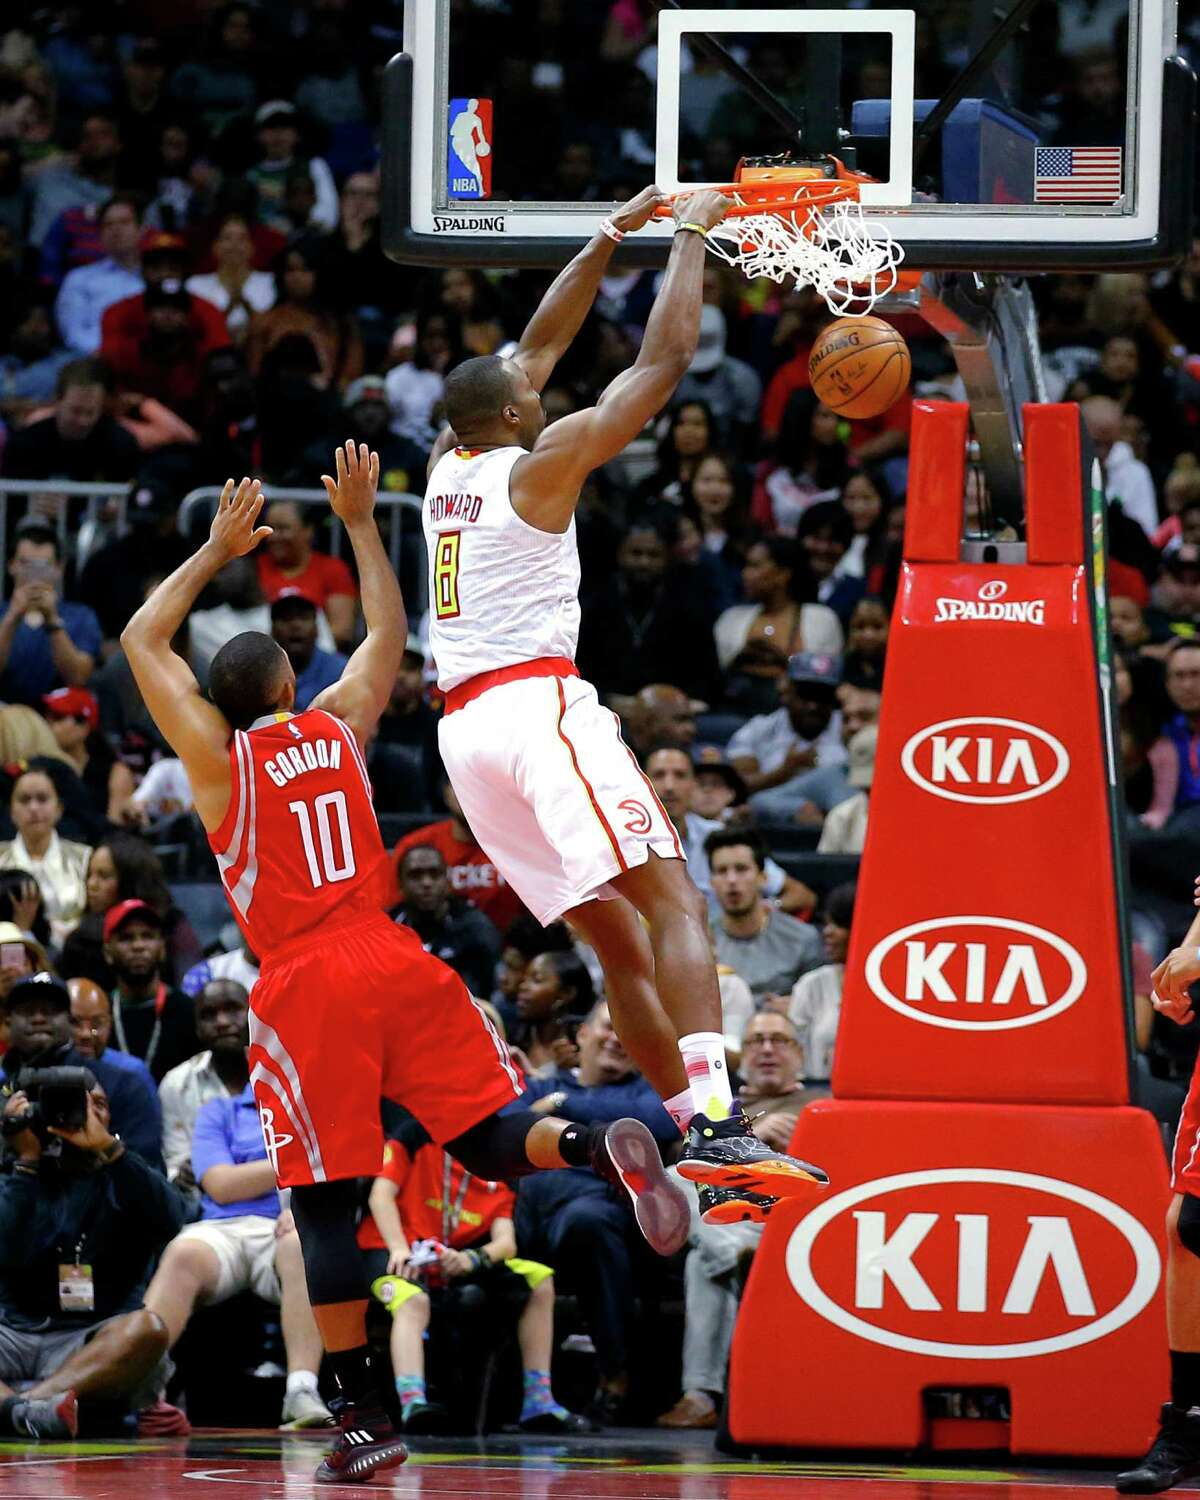 Atlanta Hawks center Dwight Howard (8) dunks in front of Houston Rockets guard Eric Gordon (10) during the second half of an NBA basketball game Saturday, Nov. 5, 2016, in Atlanta. The Hawks won 112-97. (AP Photo/Todd Kirkland)